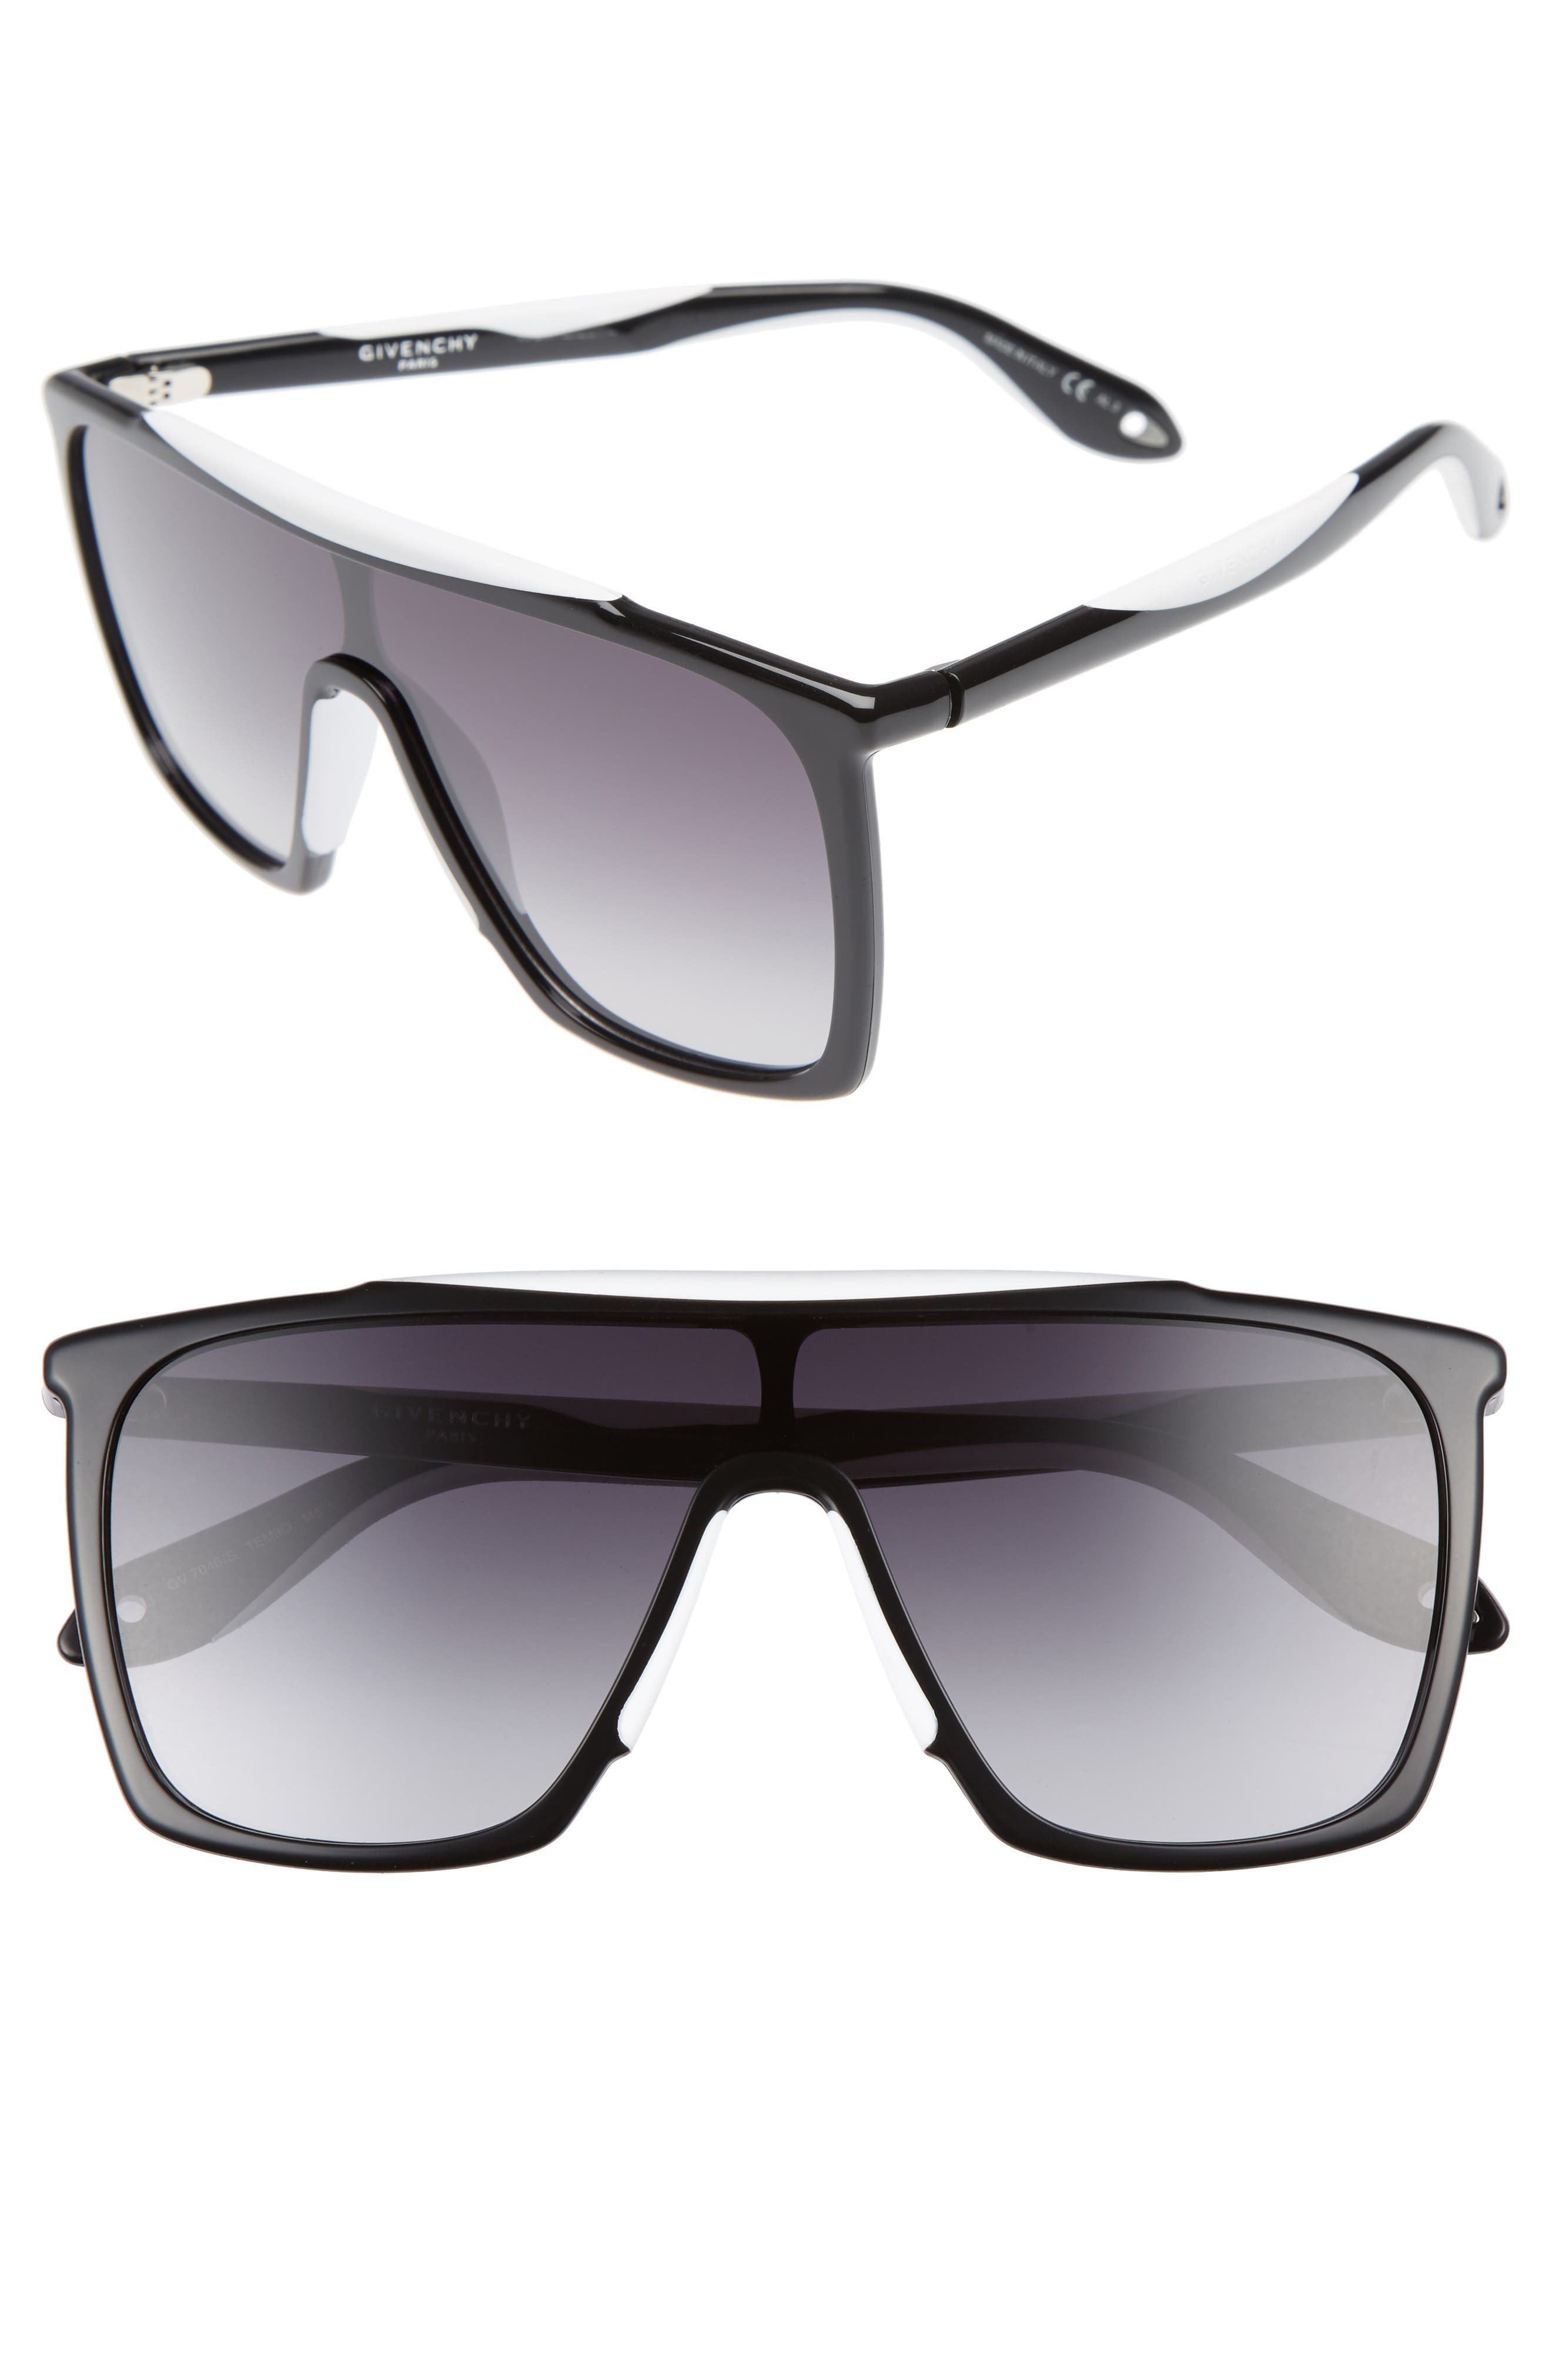 Givenchy 99mm Oversize Sunglasses